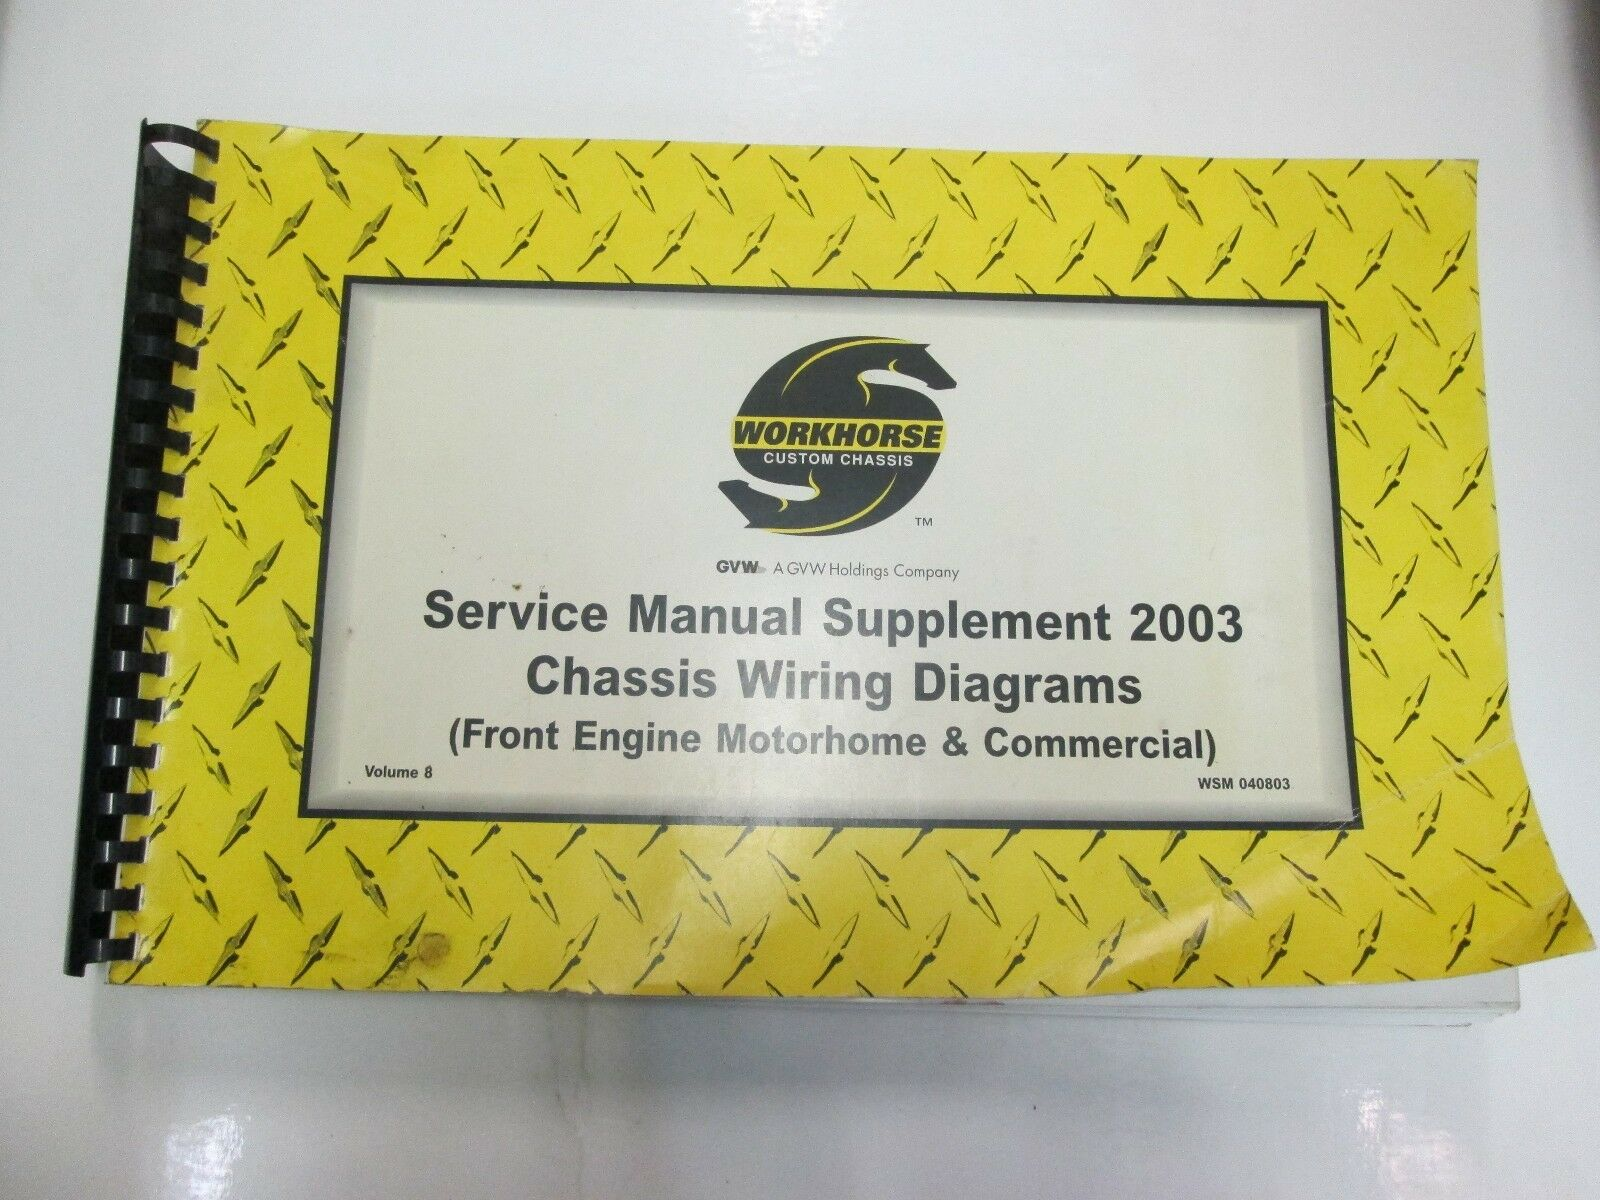 Workhorse Custom Chassis Service Manual Supplement Chassis Wiring Diagrams  VOL 8 | eBay | Workhorse Motorhome Chassis Wiring Diagram |  | eBay